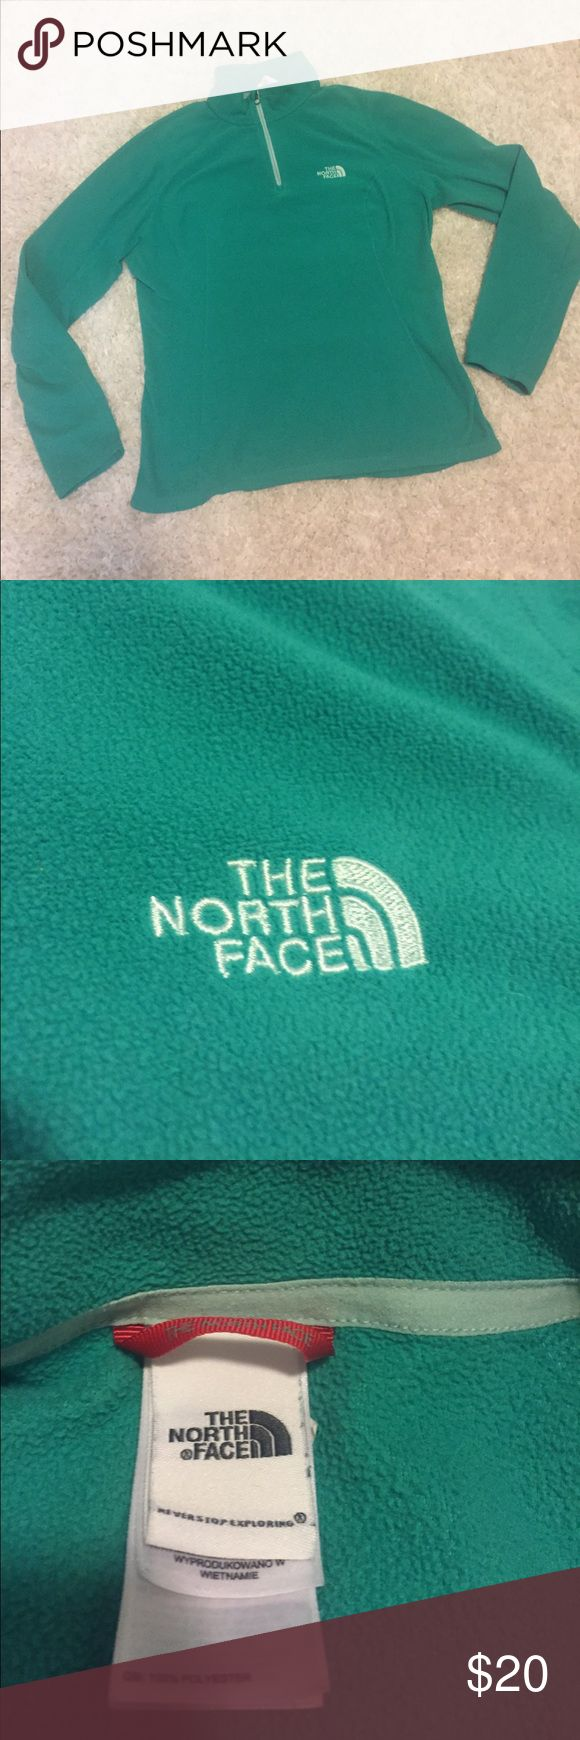 Women's TheNorth Face teal shirt Lightweight, excellent condition, women's medium The North Face Tops